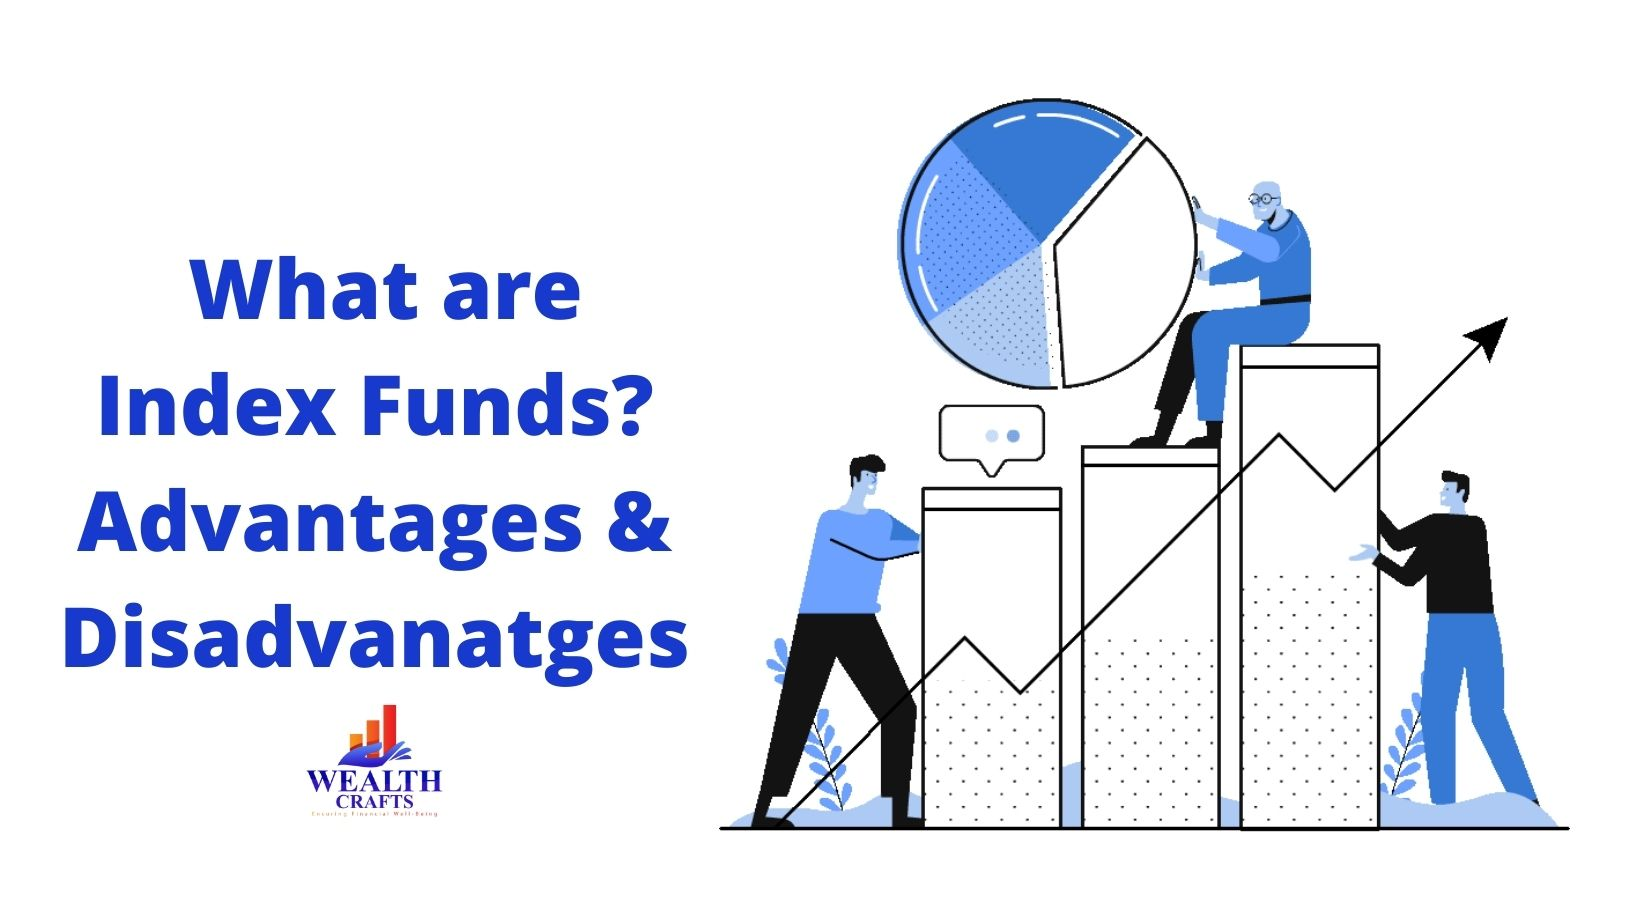 What are Index Funds